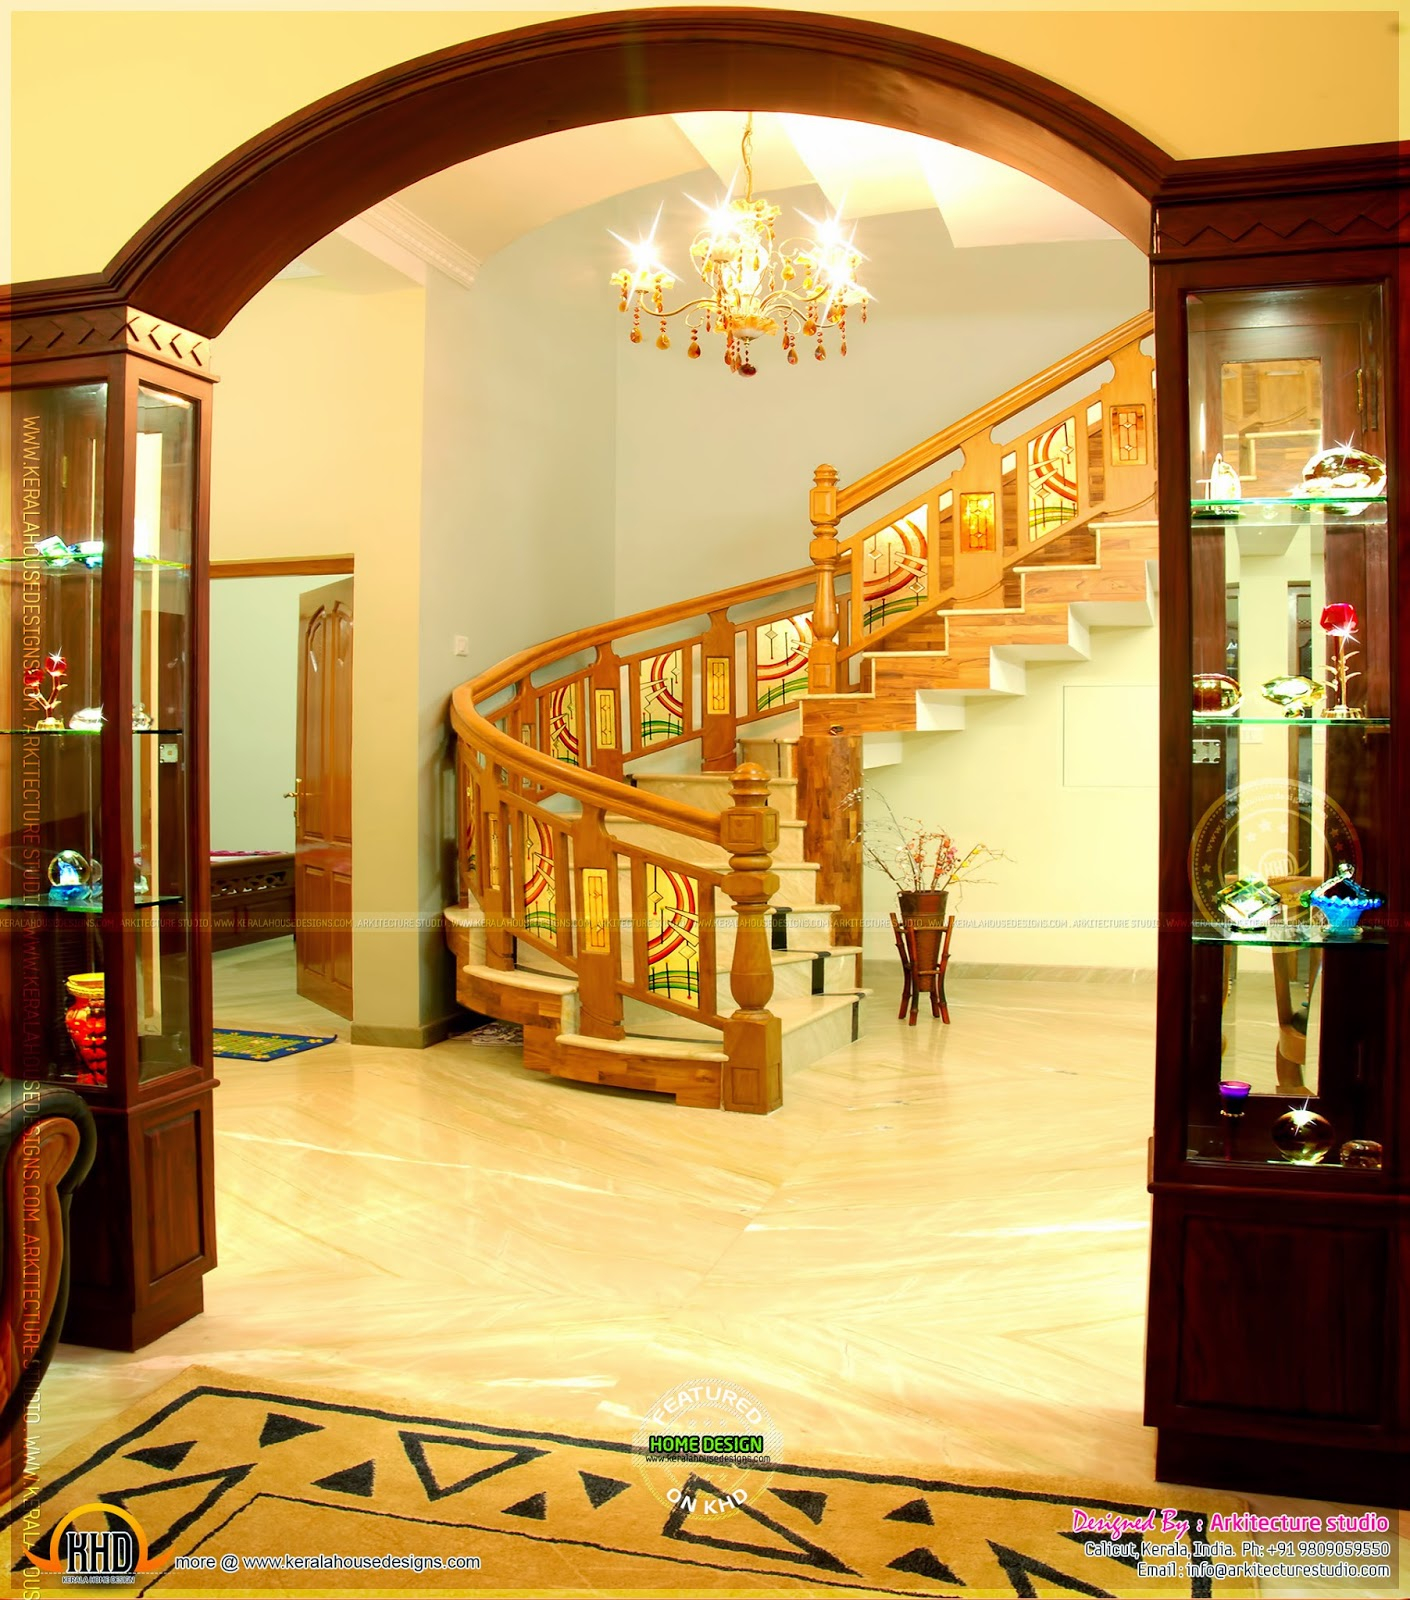 Real house in kerala with interior photos kerala home for New model house interior design